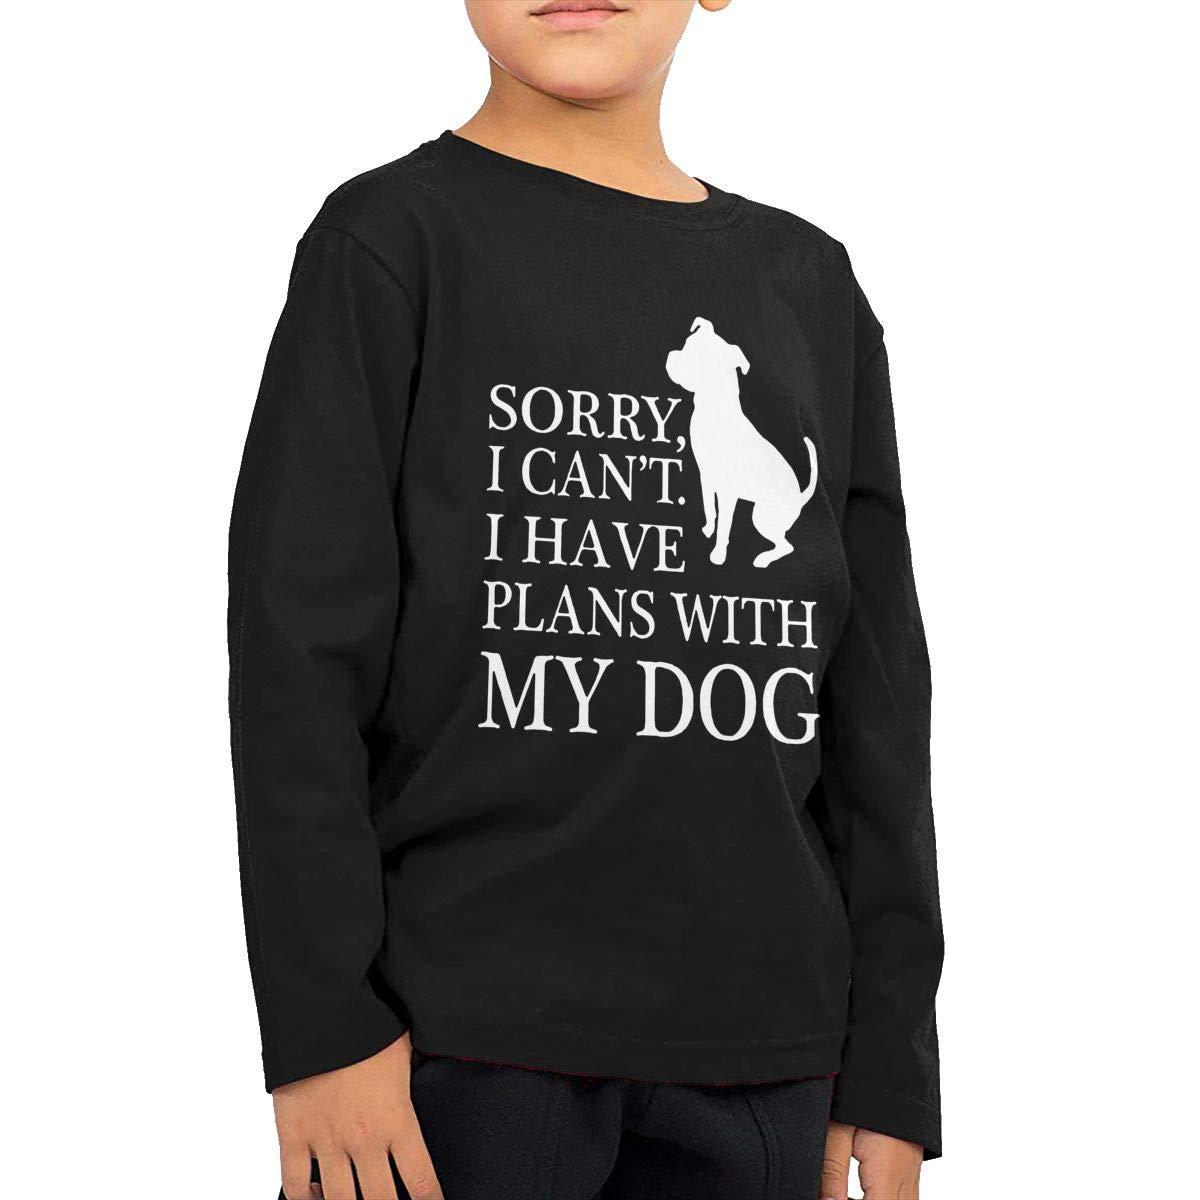 CERTONGCXTS Little Boys Sorry I Have Plans with My Dog Pitbull ComfortSoft Long Sleeve T-Shirt I Cant